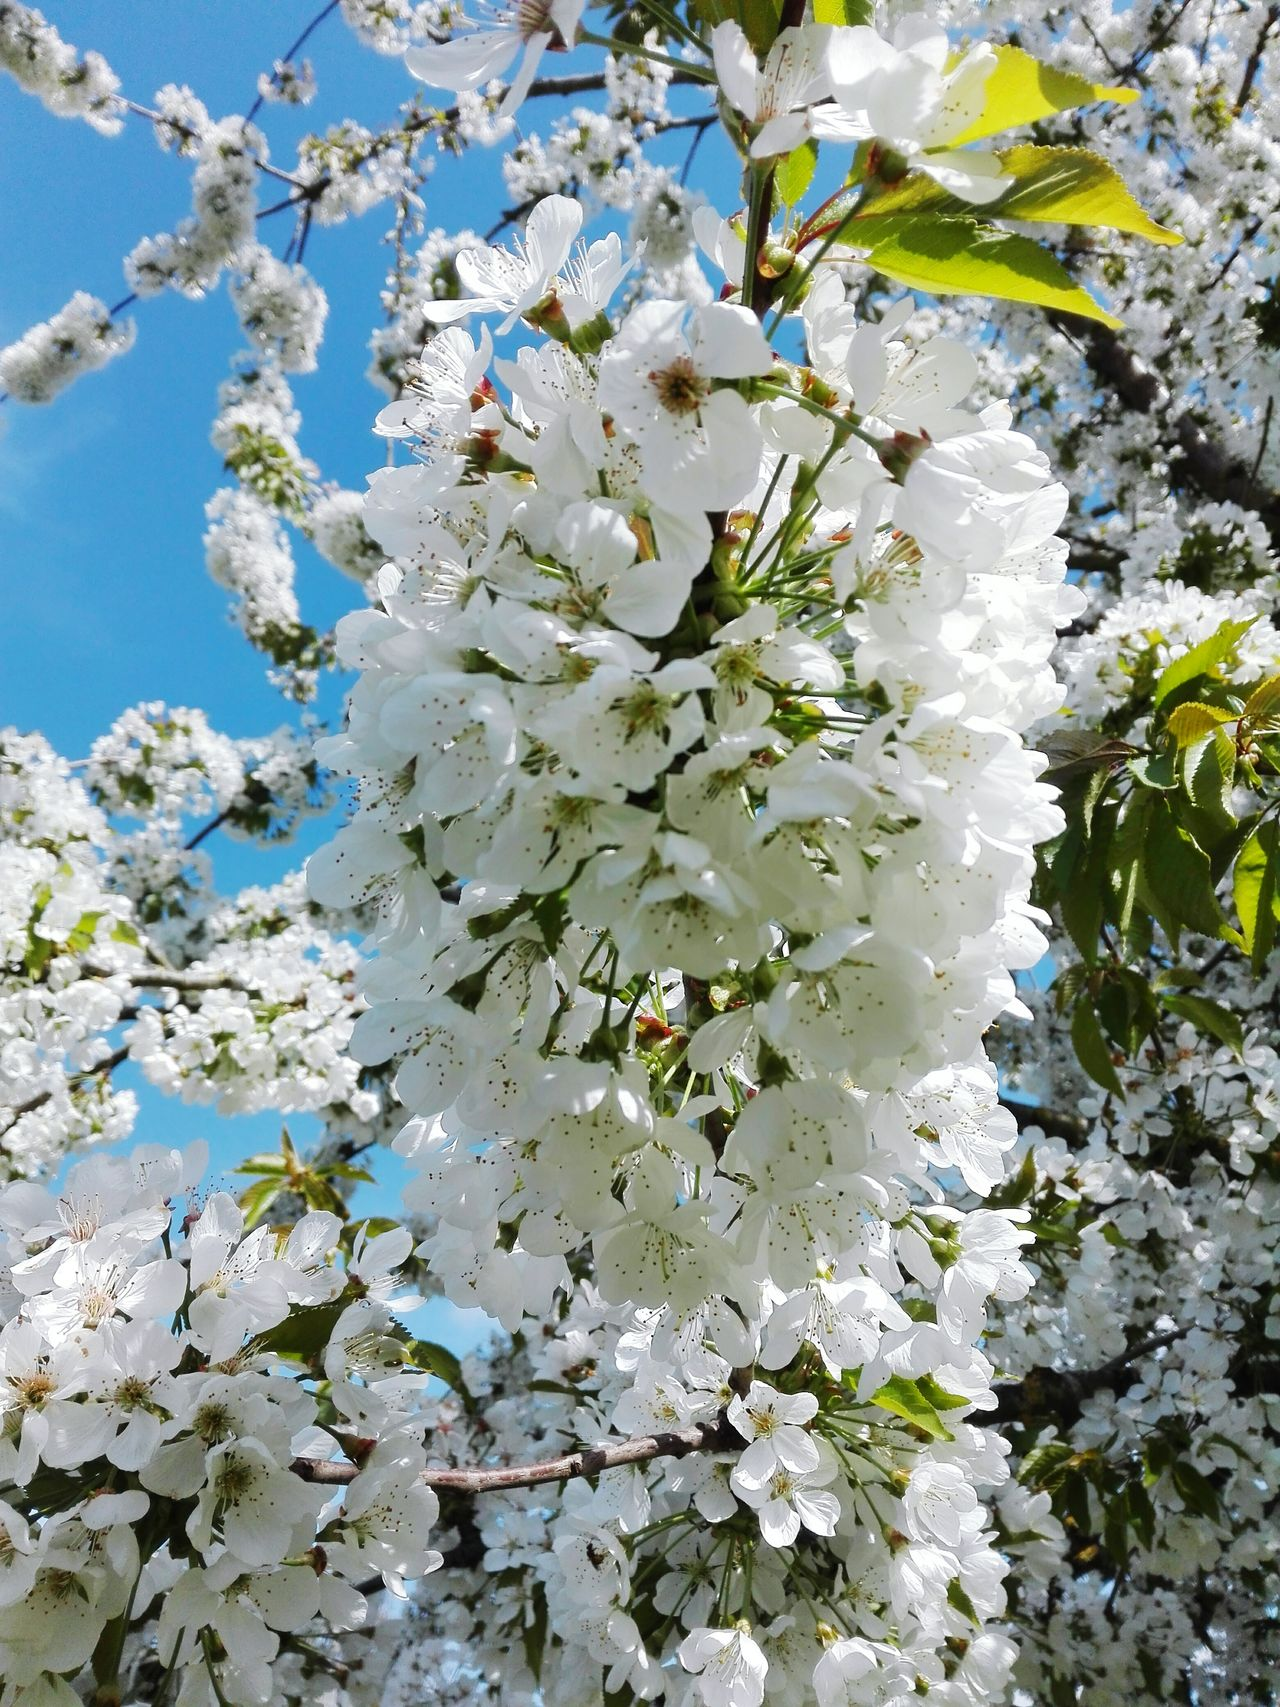 Nature Outdoors No People Beauty In Nature Witeflower Cherry Flowers